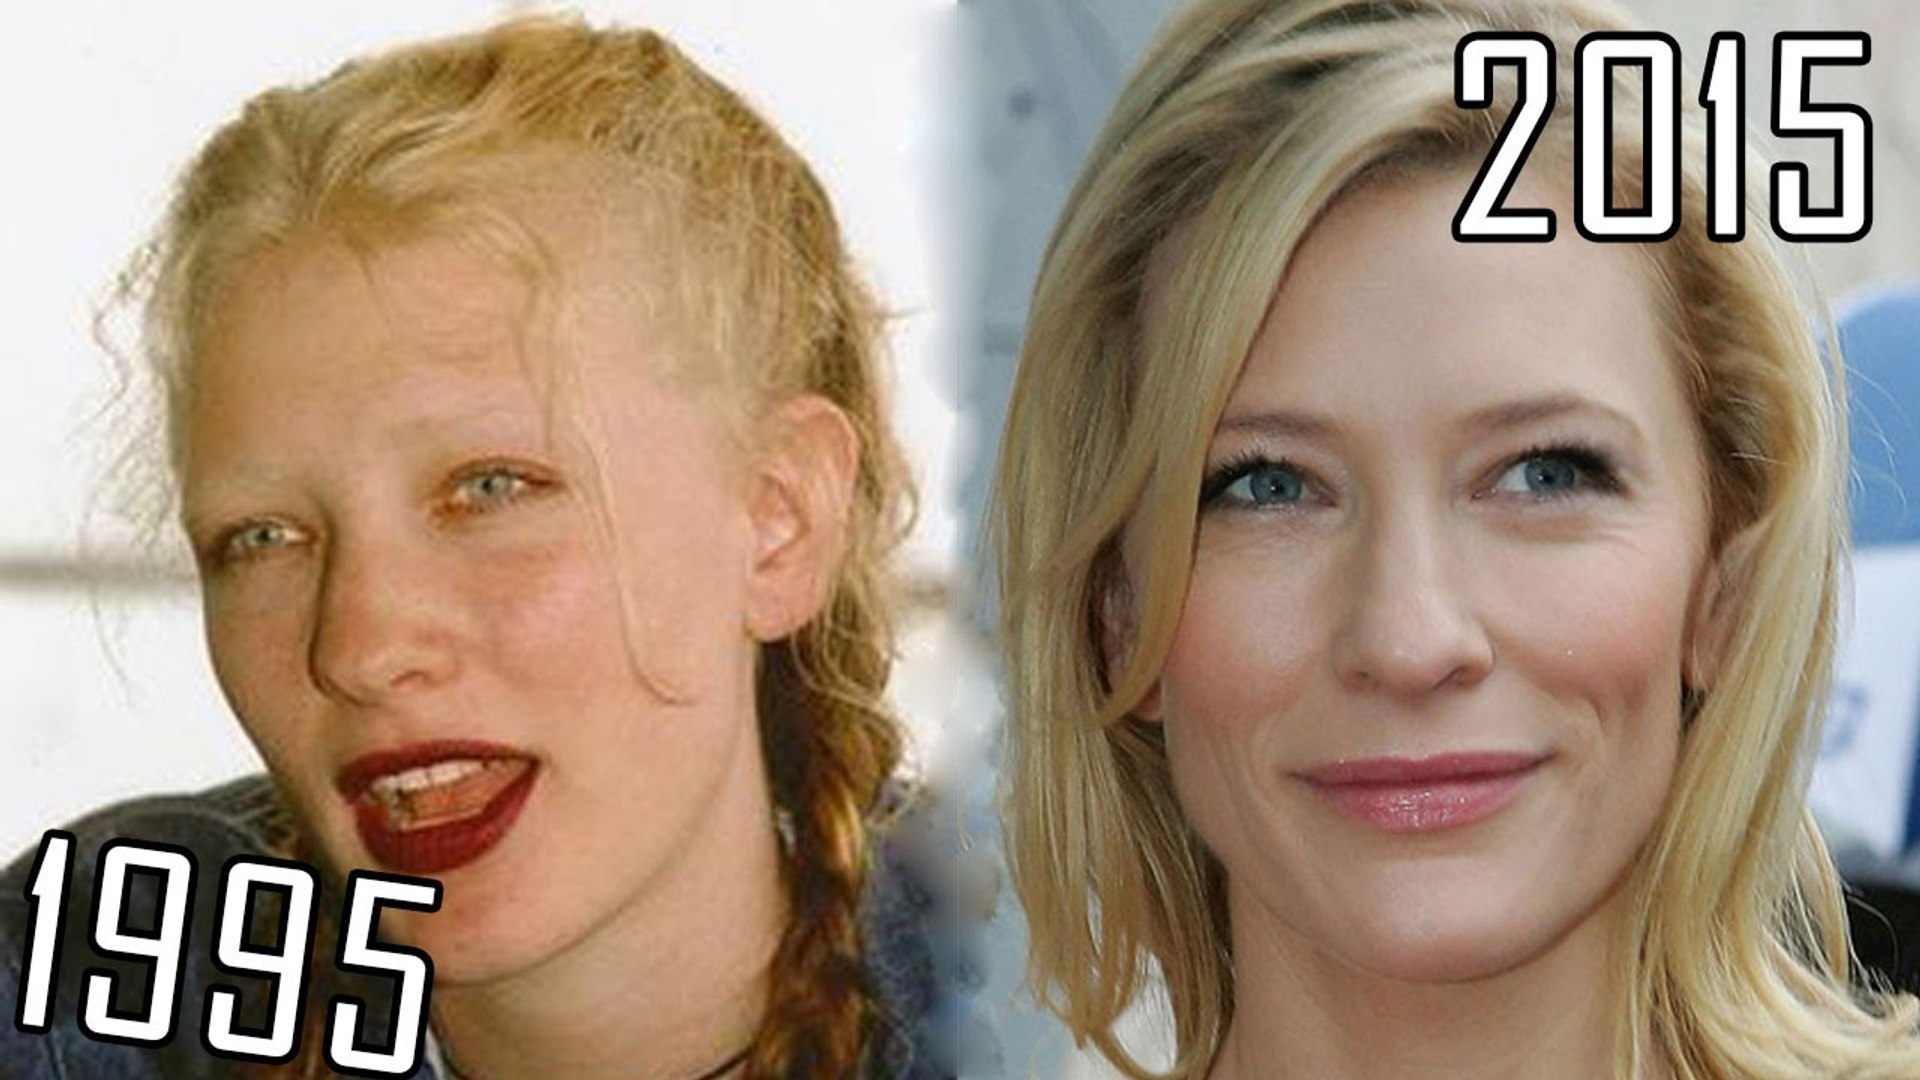 Cate Blanchett (1995 - 2015) all movies list from 1995! How much has changed? Before and Now! The Curious Case of Benjamin Button, The Aviator, Babel, Indiana Jones and the Kingdom of the Crystal Skull, Robin Hood, Blue Jasmine, I'm Not There, Elizabeth